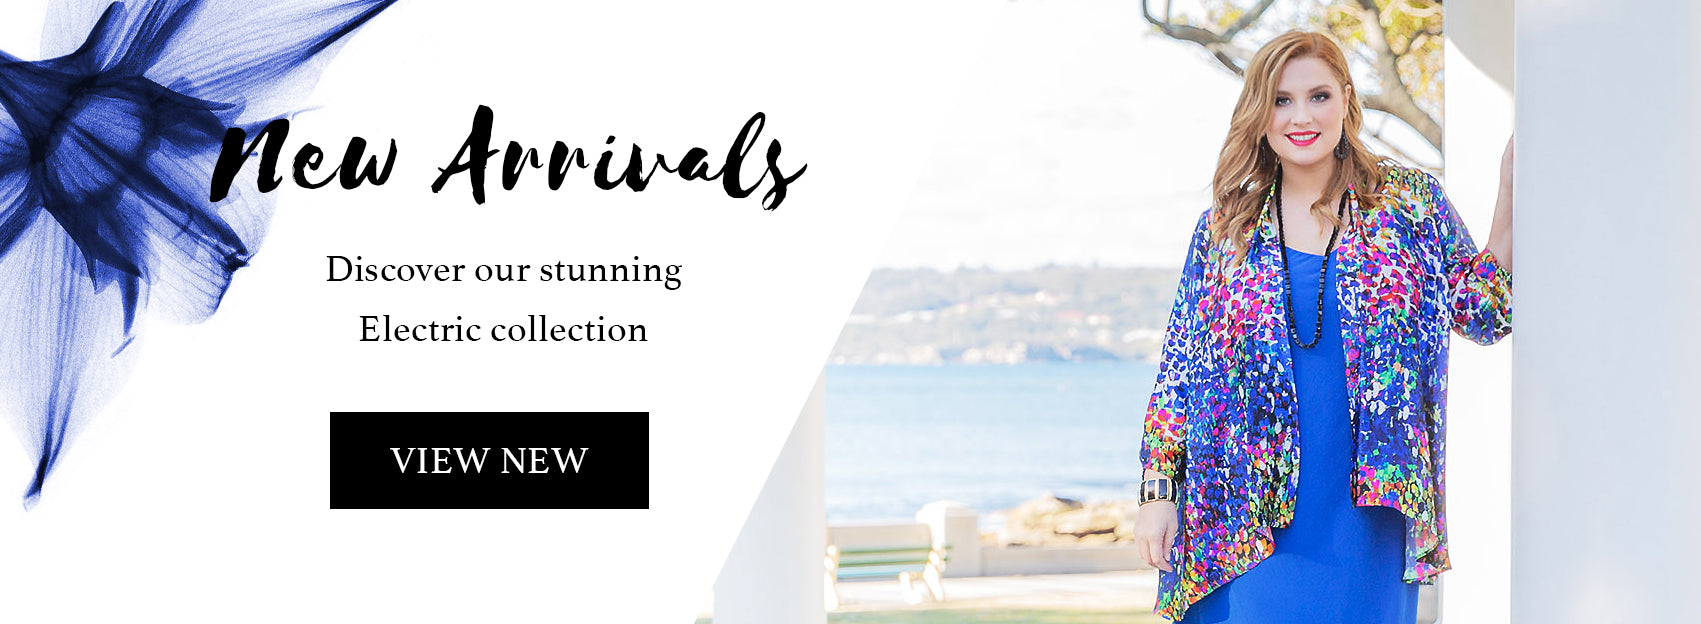 Plus Size Womens' Designer Clothing Online - Afterpay Store